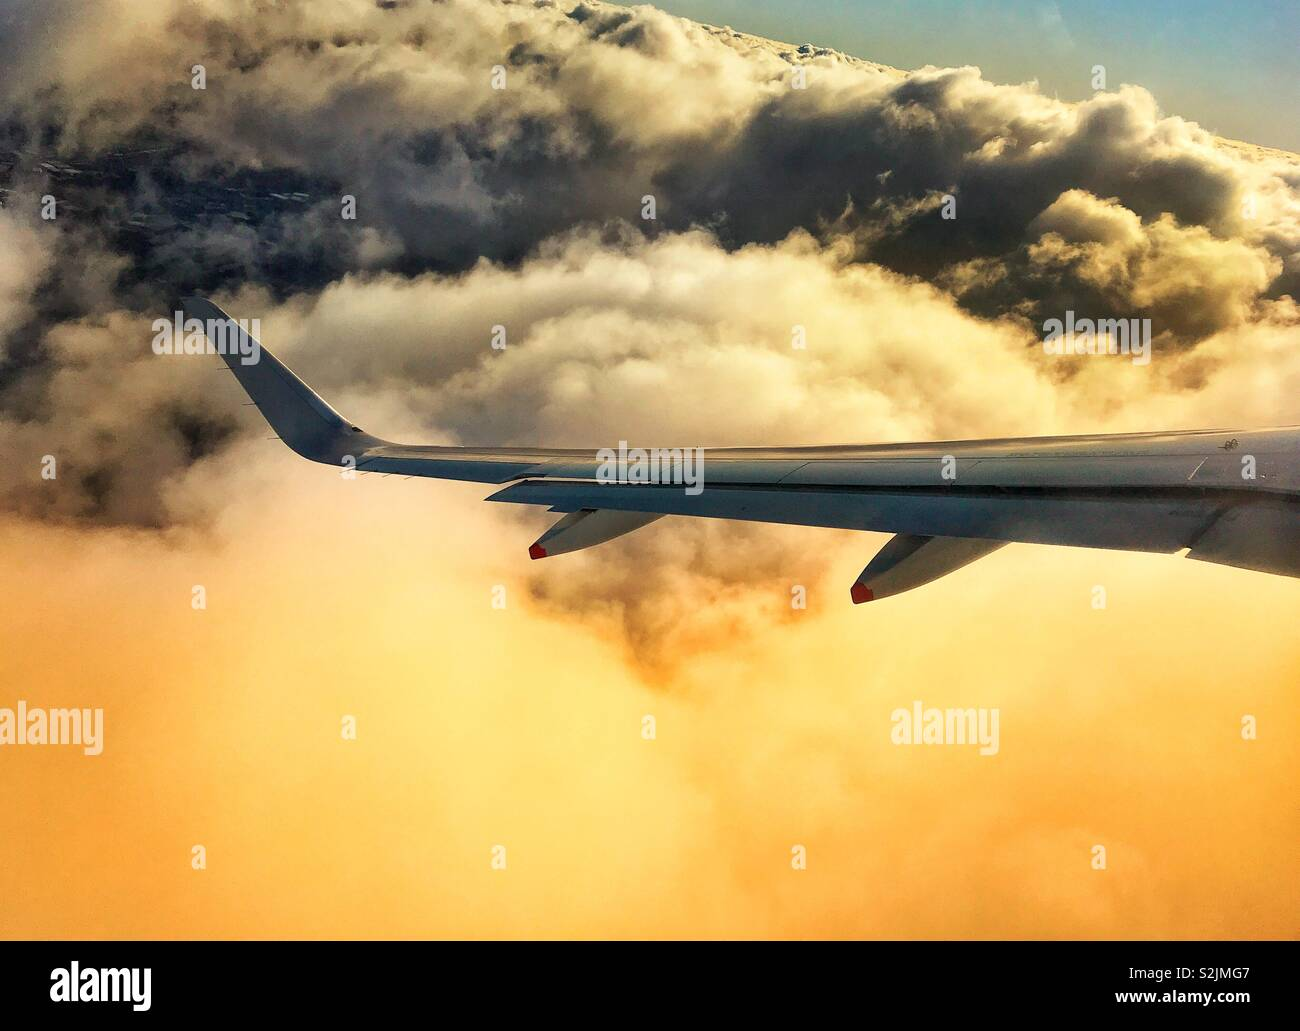 Wing of an airliner in flight climbing above stormy clouds - Stock Image